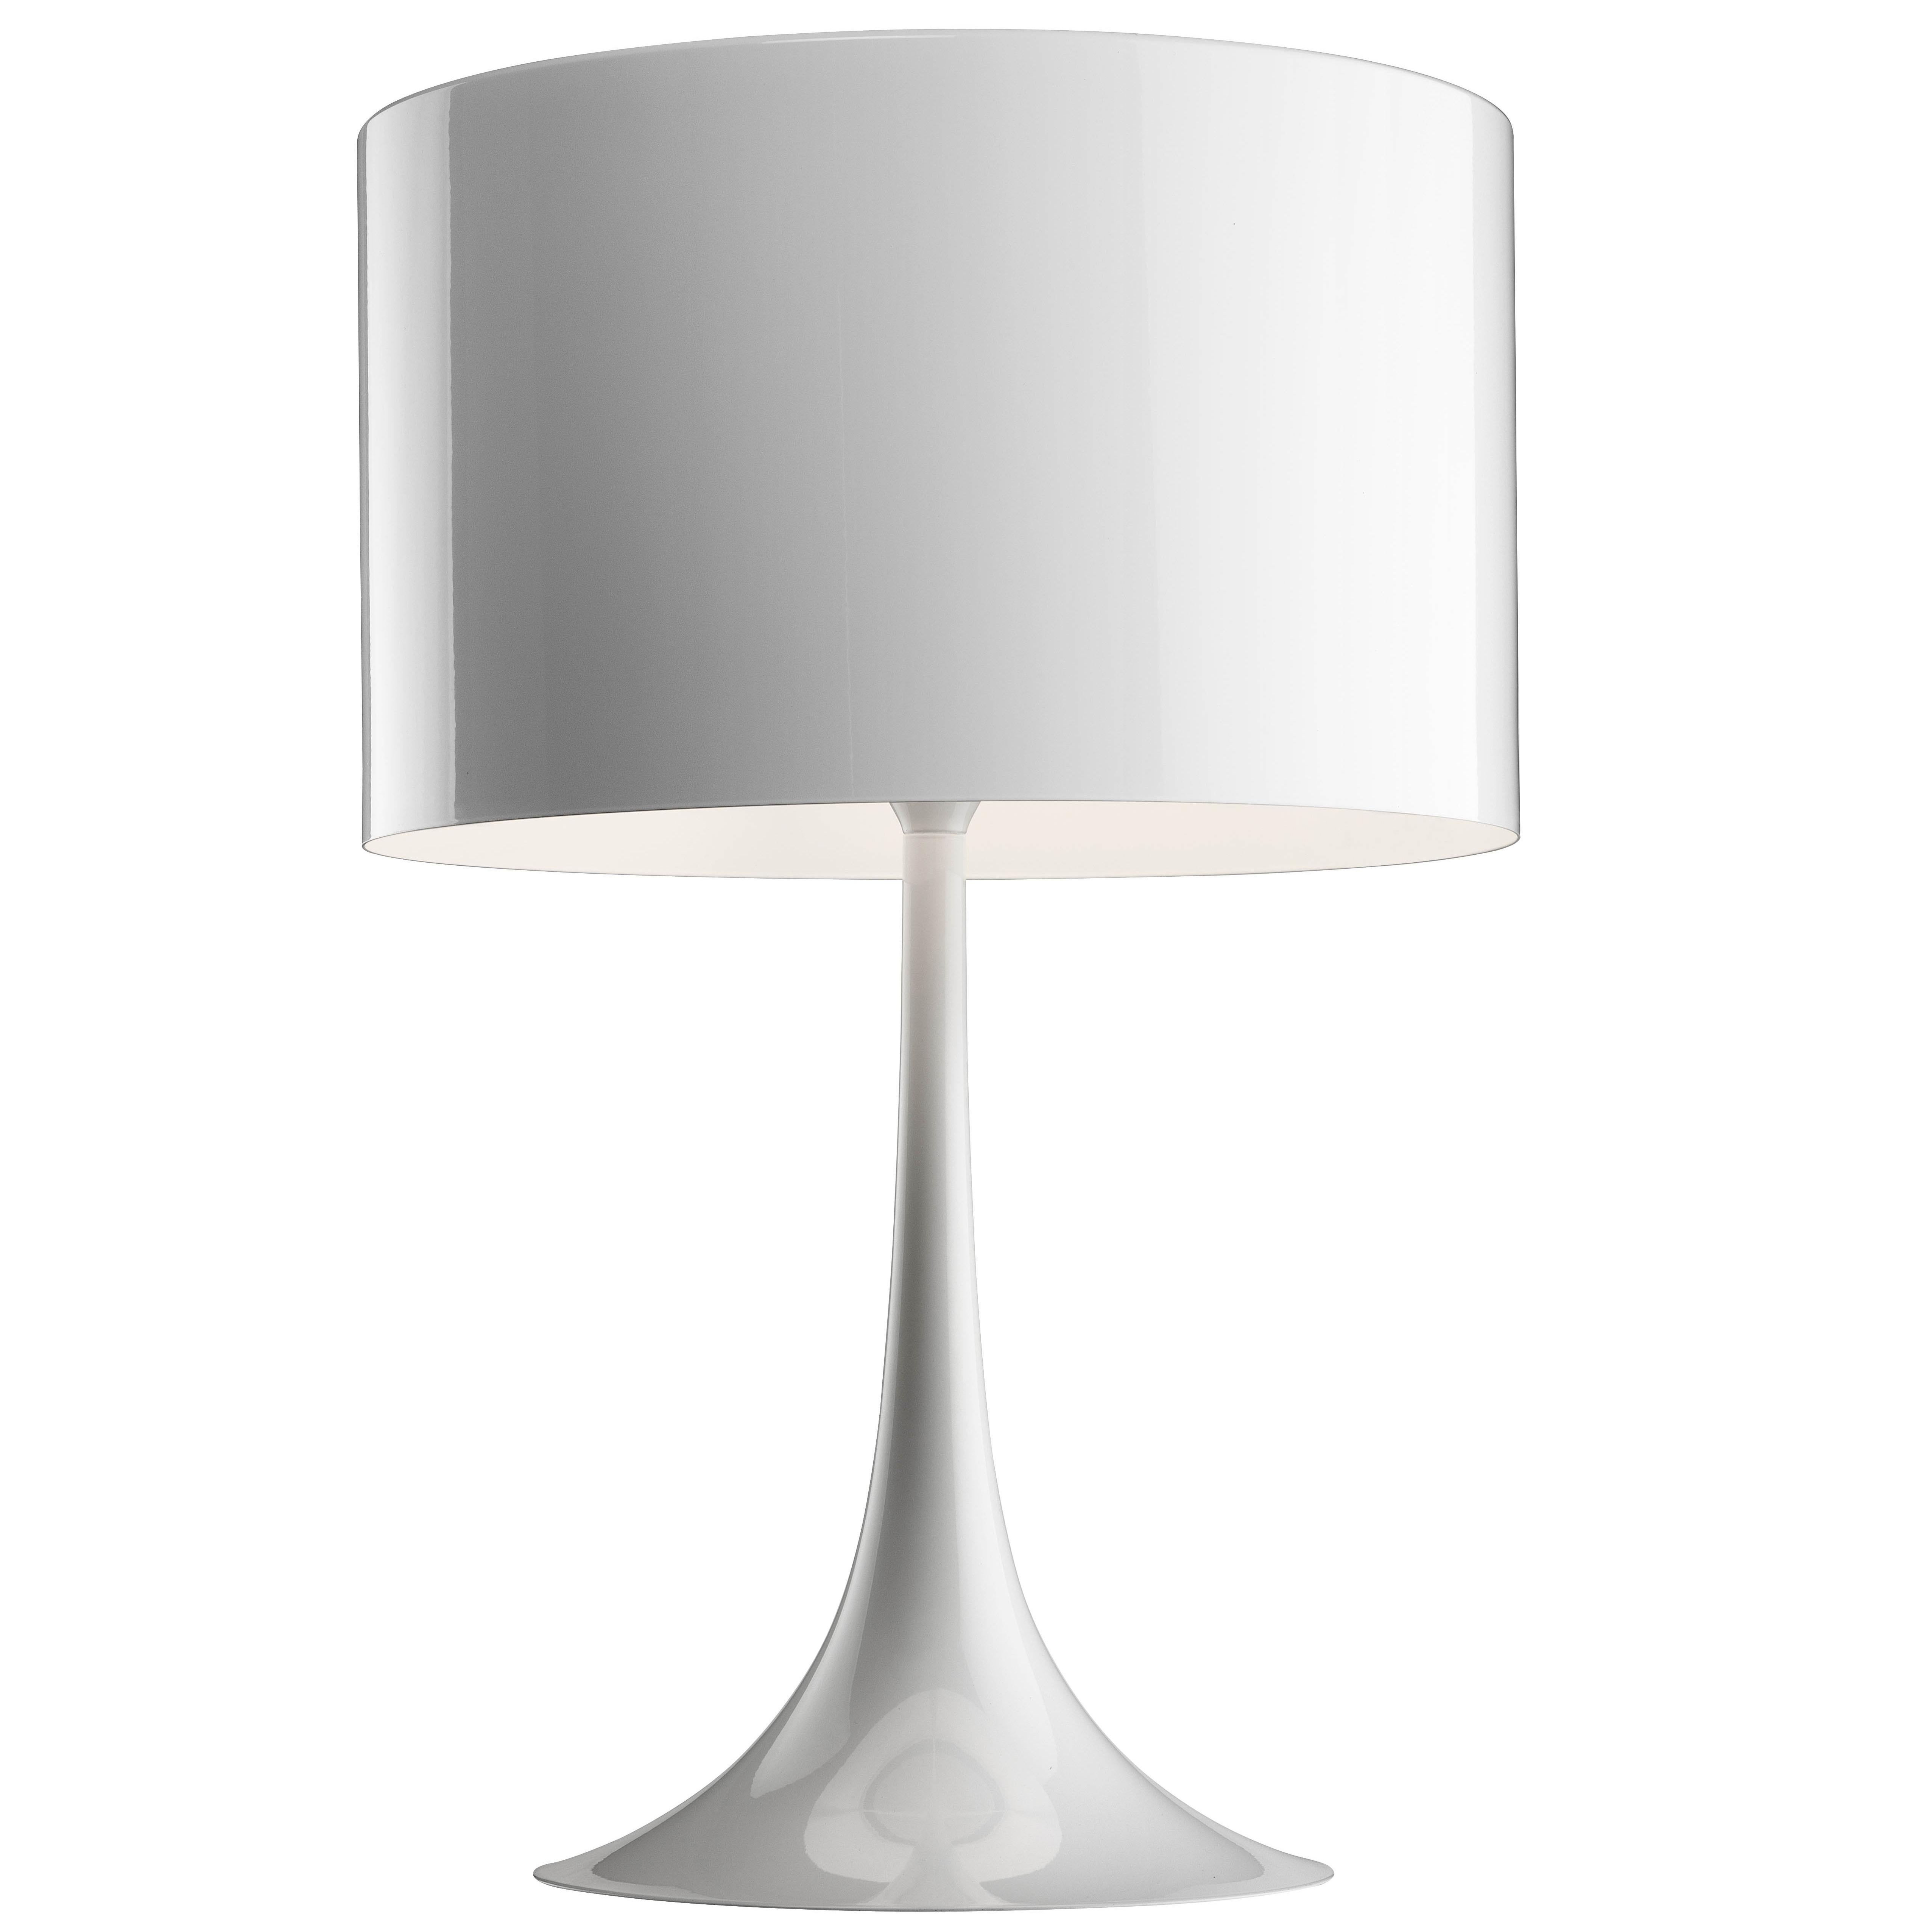 FLOS Spun T1 Halogen Table Lamp In Glossy White By Sebastian Wrong For Sale